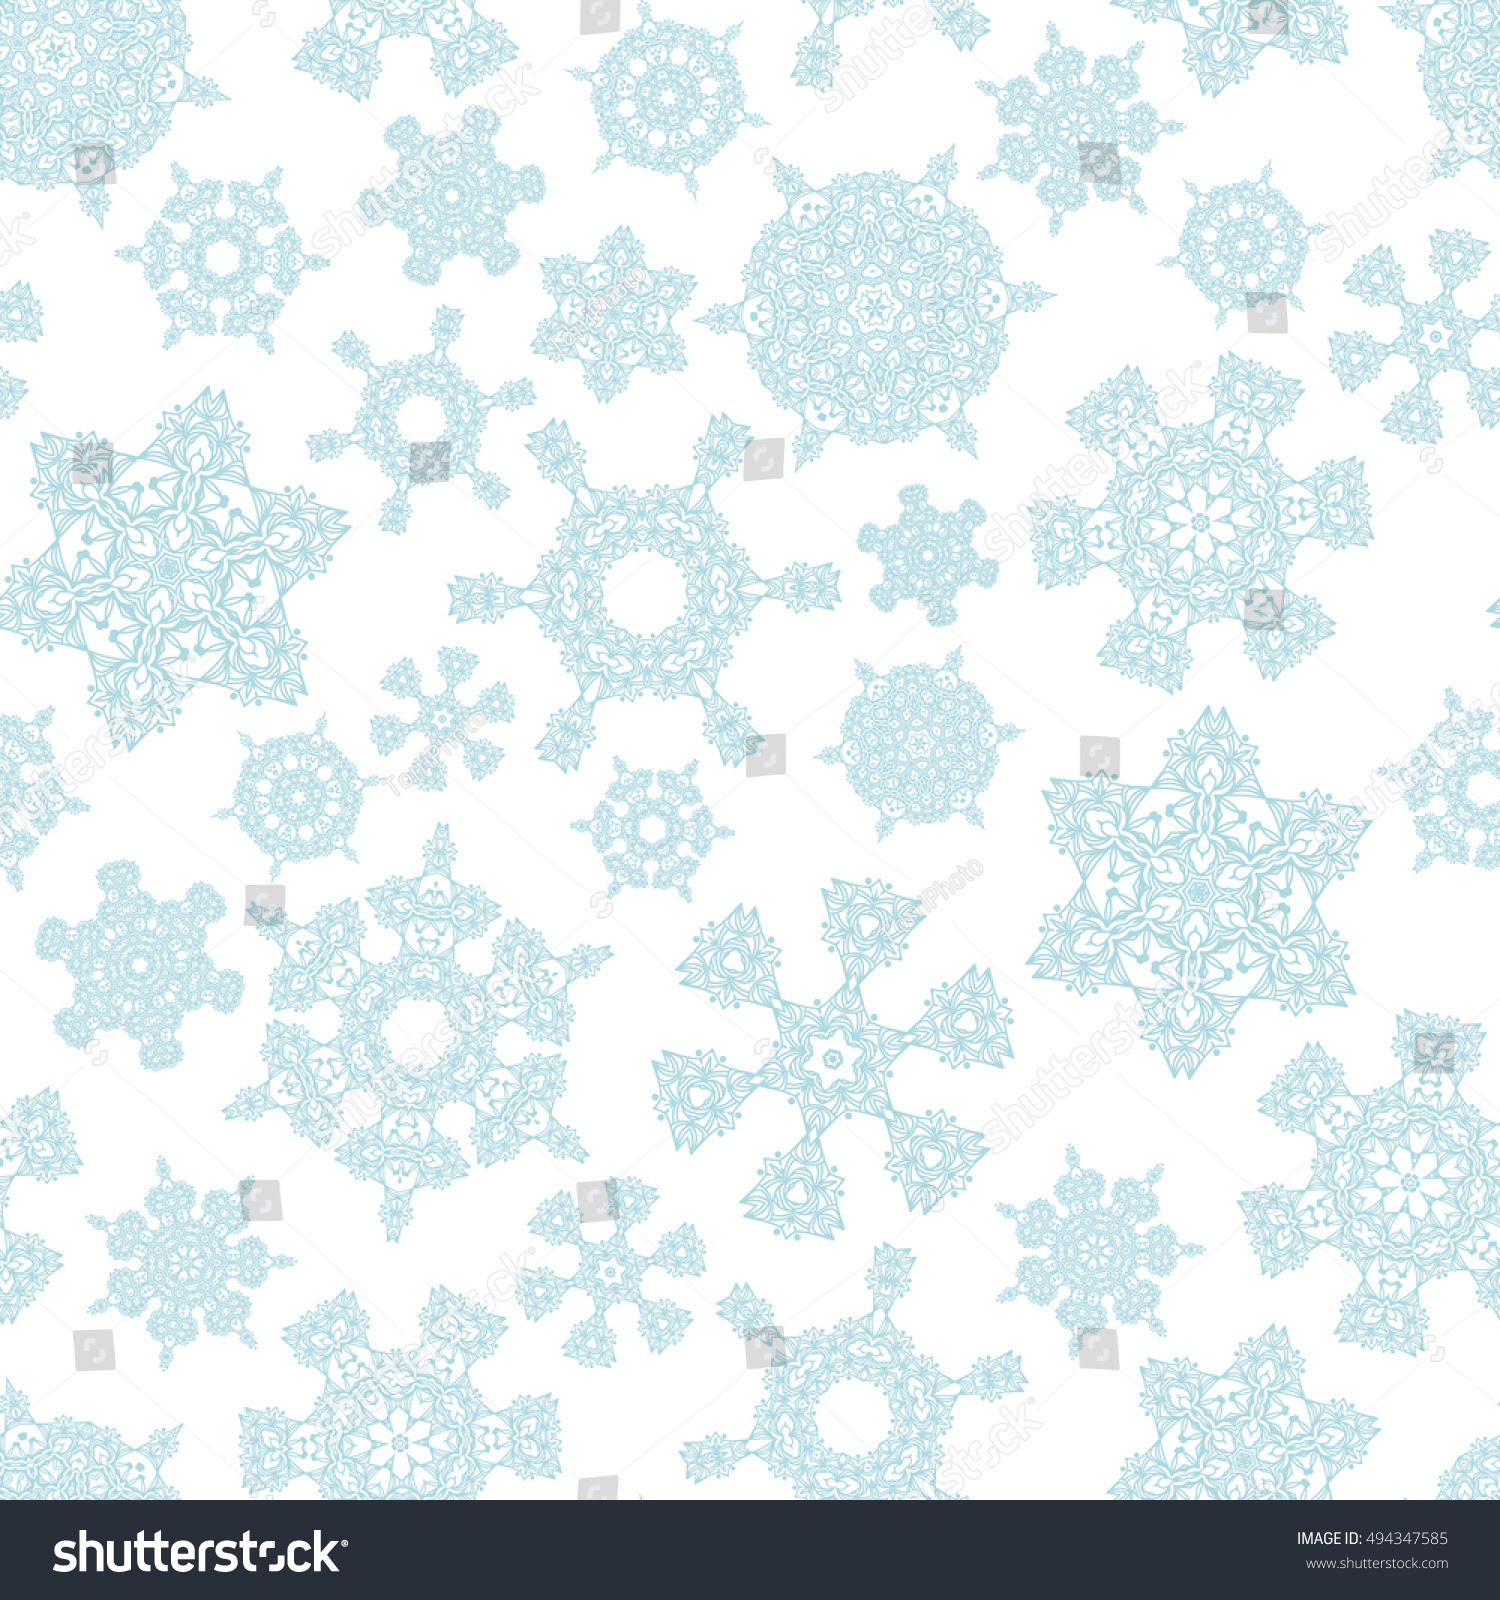 http://www.shutterstock.com/pic-494347585/stock-photo-seamless-pattern-with-abstract-blue-snowflakes-on-white.html